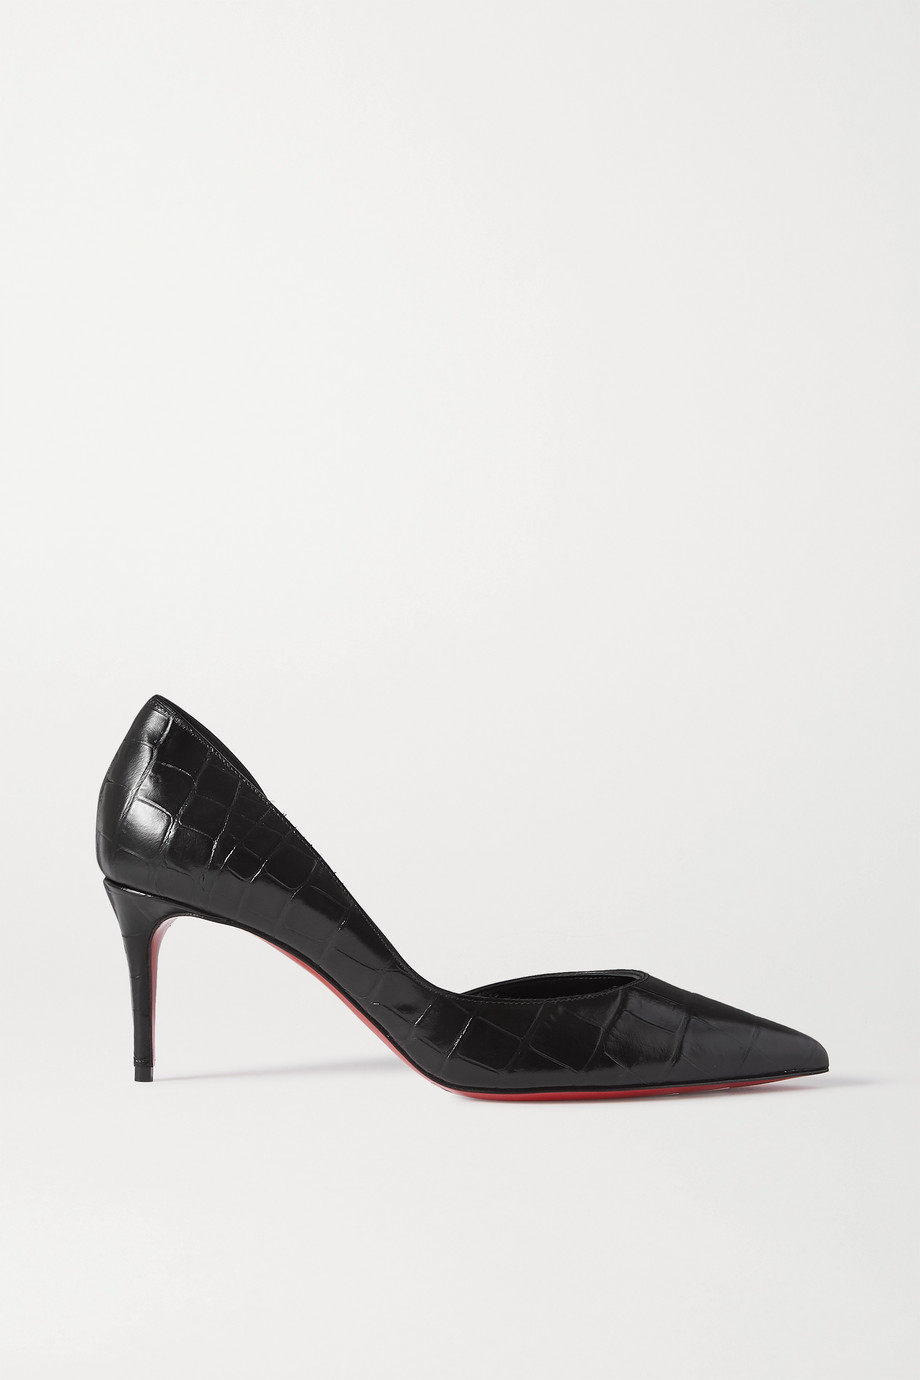 Christian Louboutin Iriza 70 croc-effect leather pumps